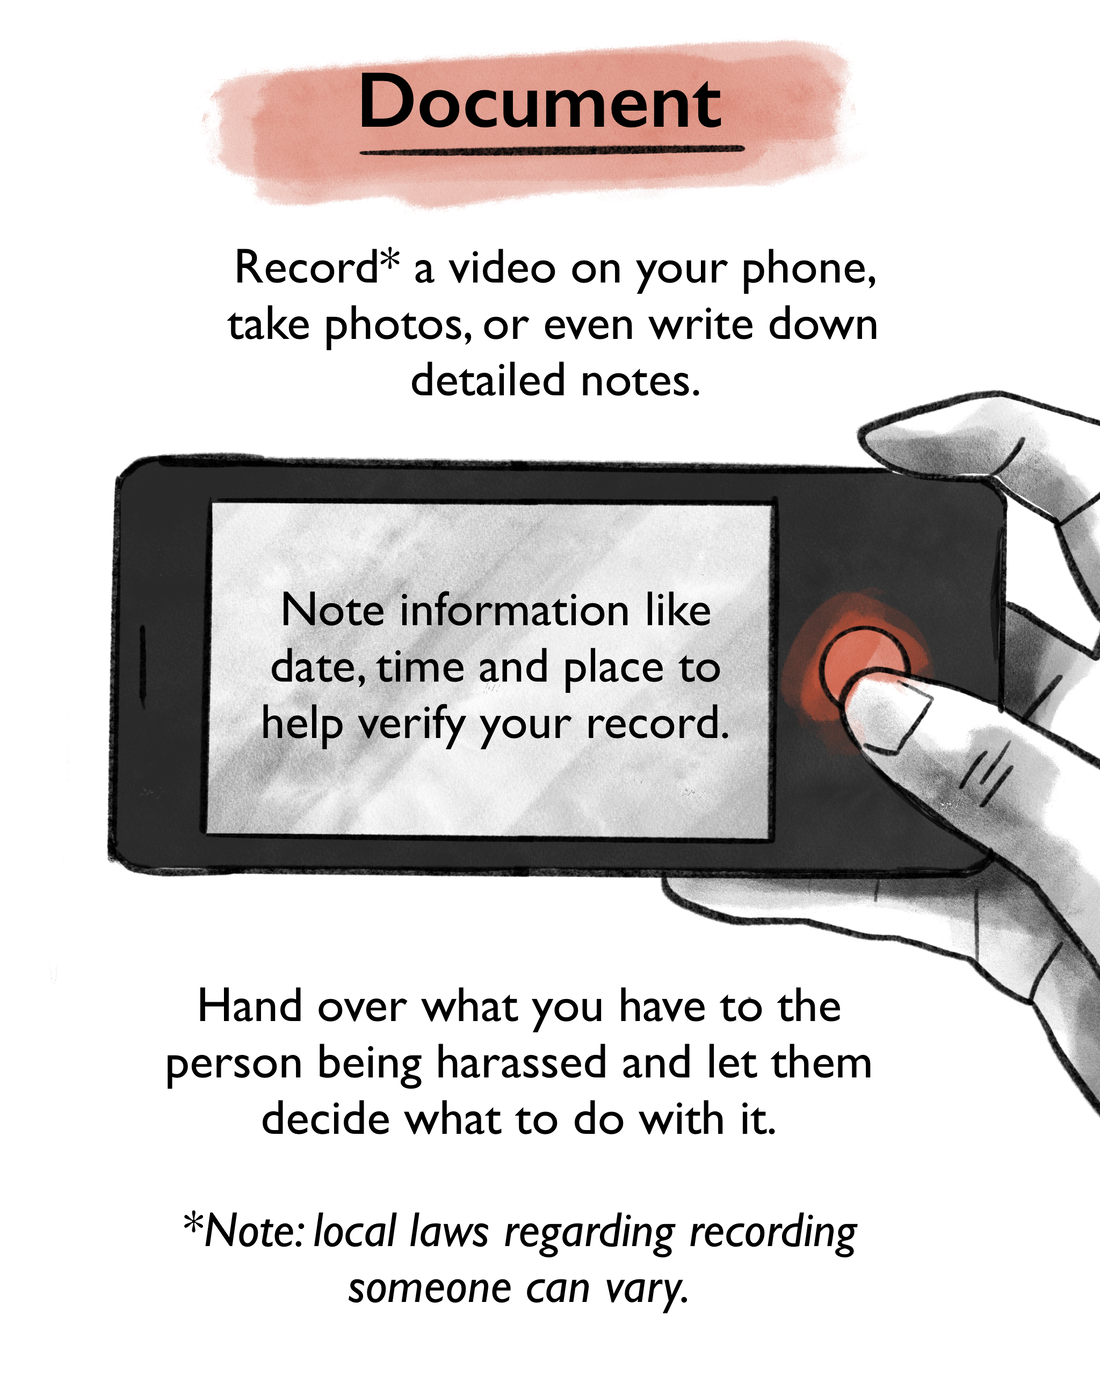 Record a video on your phone, take photos, or even write down detailed notes. Note information like date, time and place to help verify your record. Hand over what you have to the person being harassed and let them decide what to do with it. Note: local laws regarding recording someone can vary.